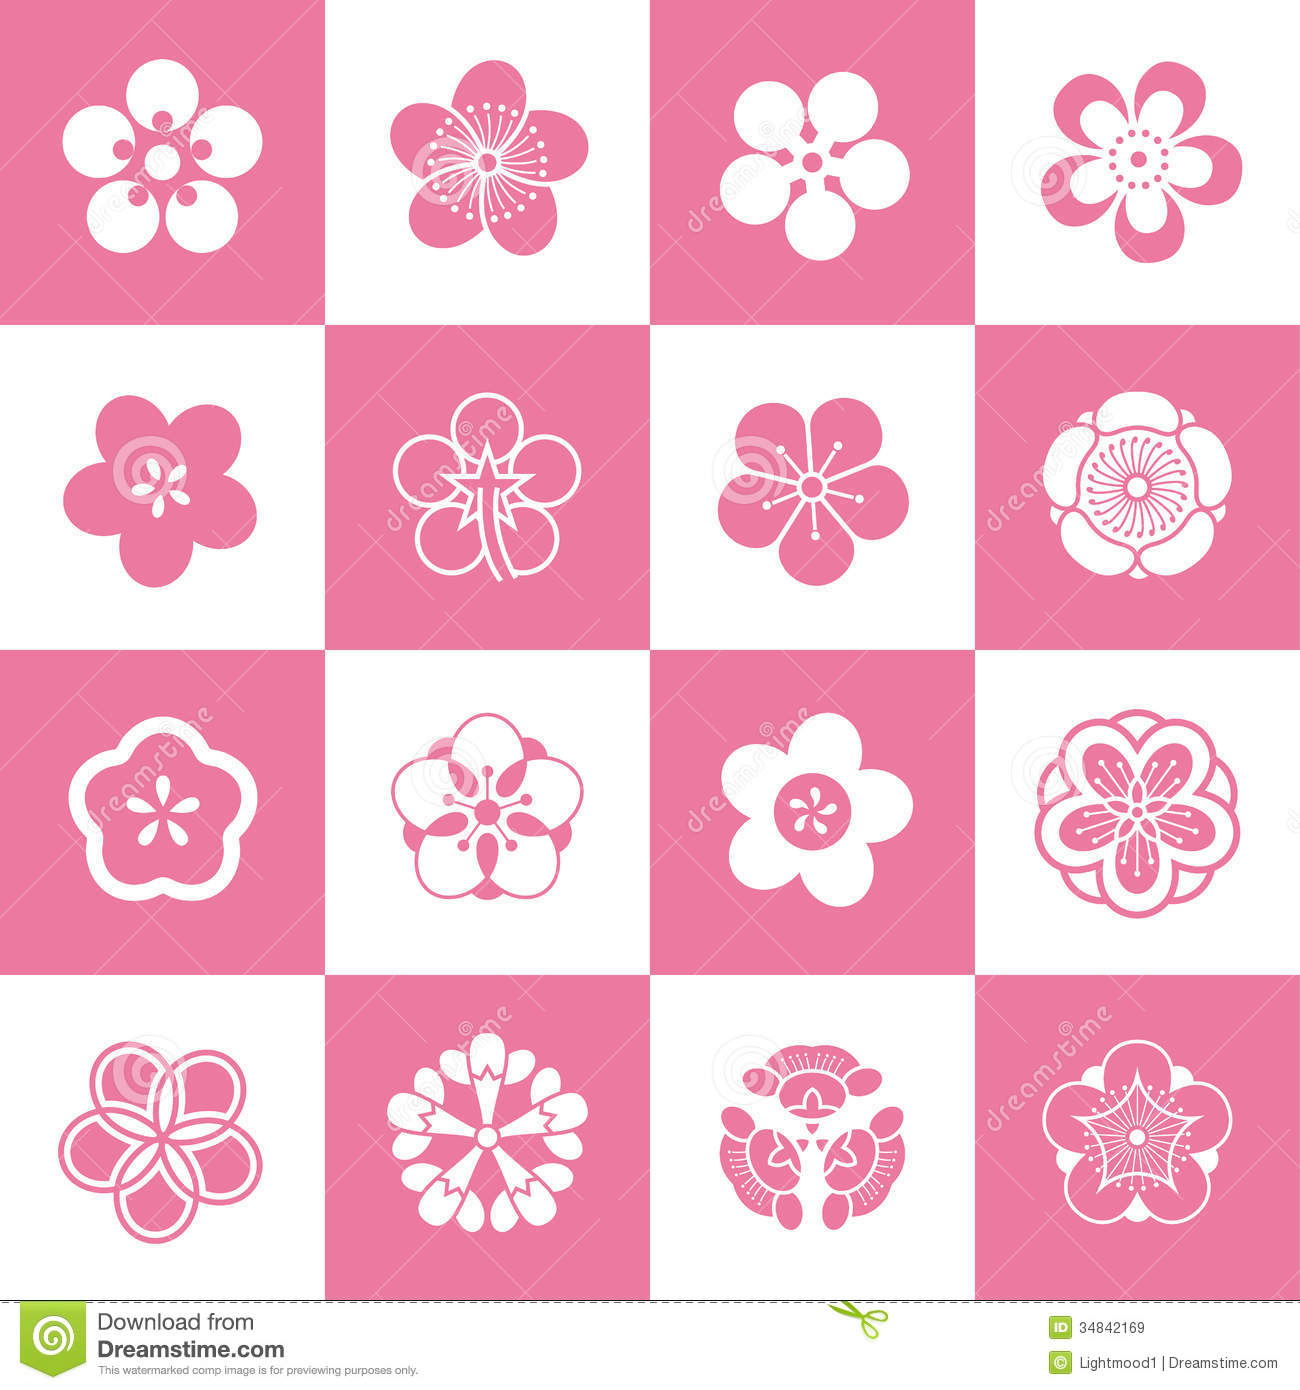 Petal Patterns Of Plum Blossom Royalty Free Stock Images.